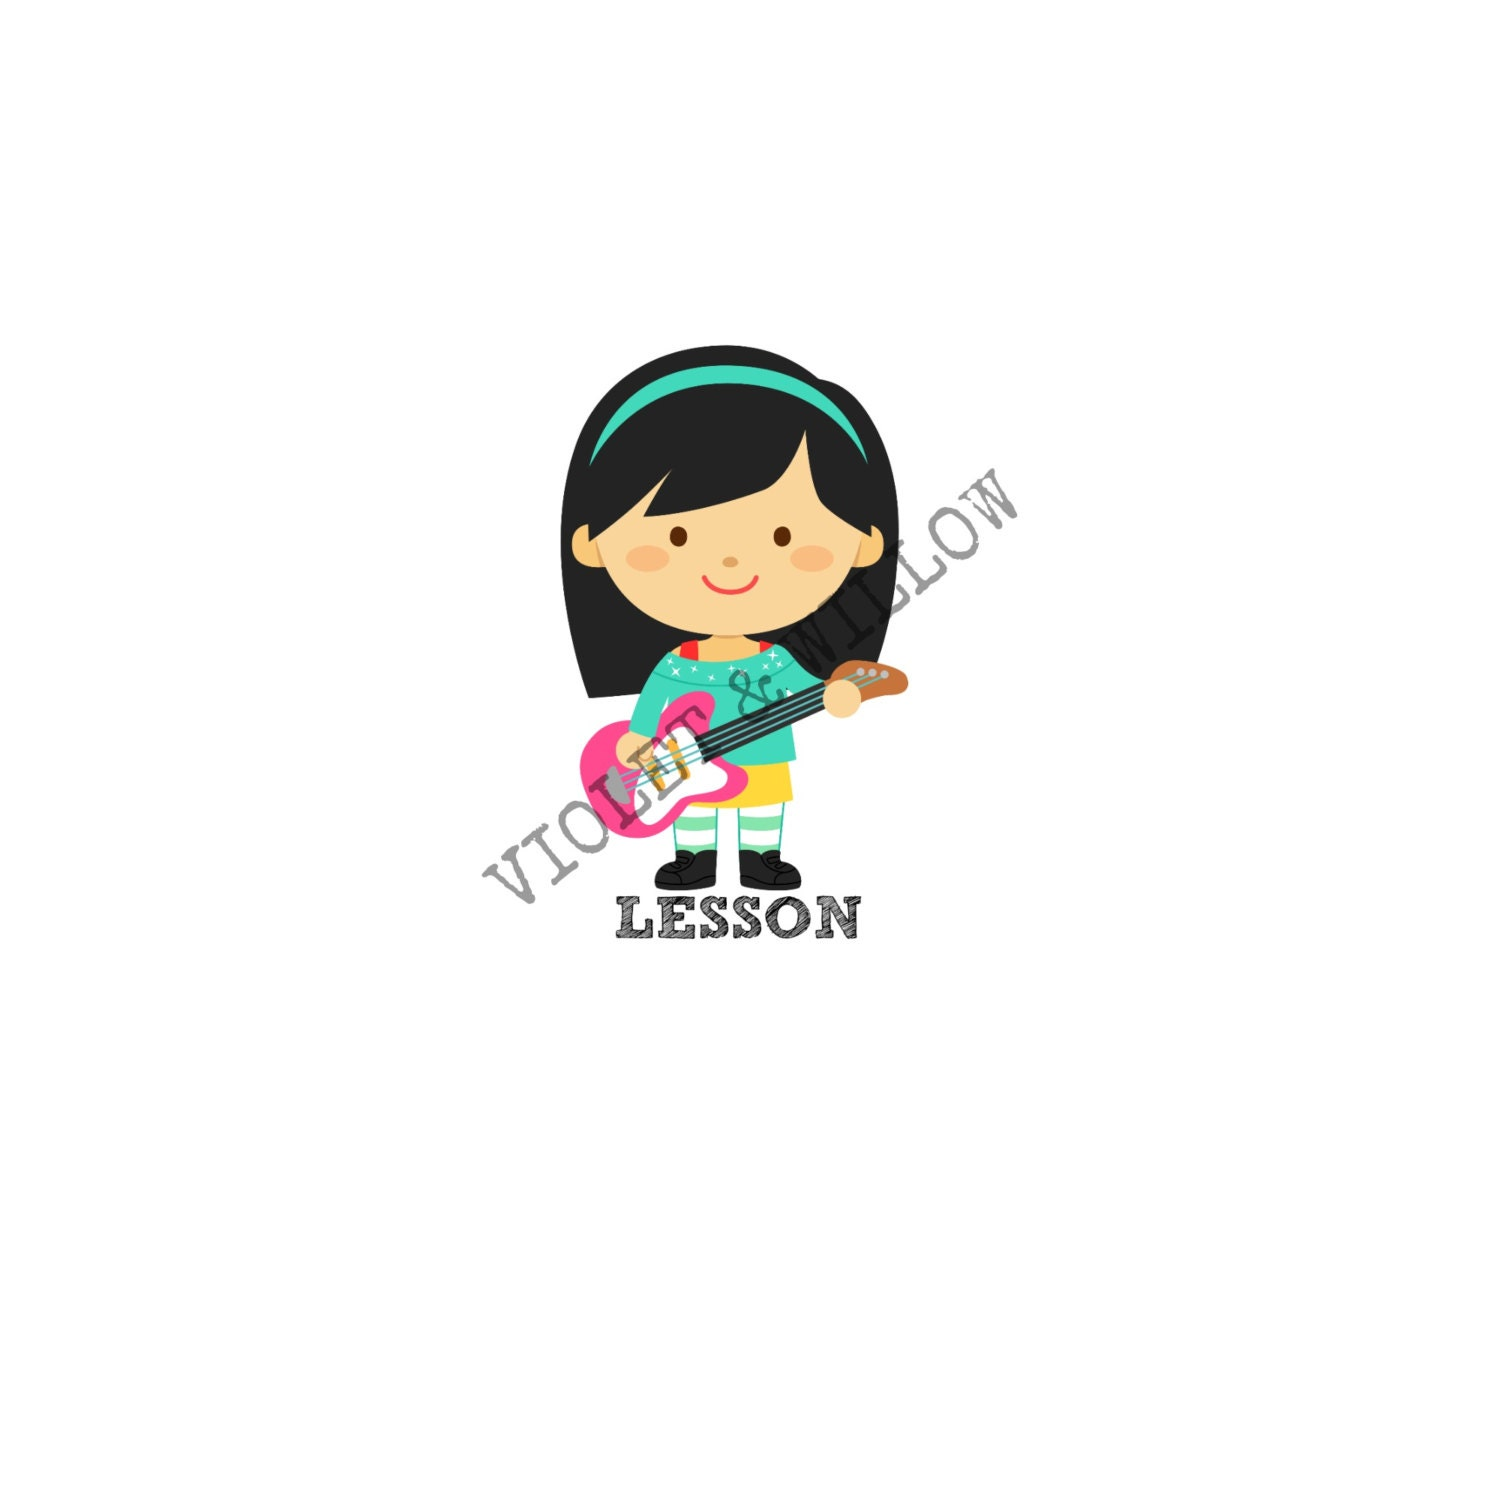 guitar stickers printable guitar stickers guitar lessons music